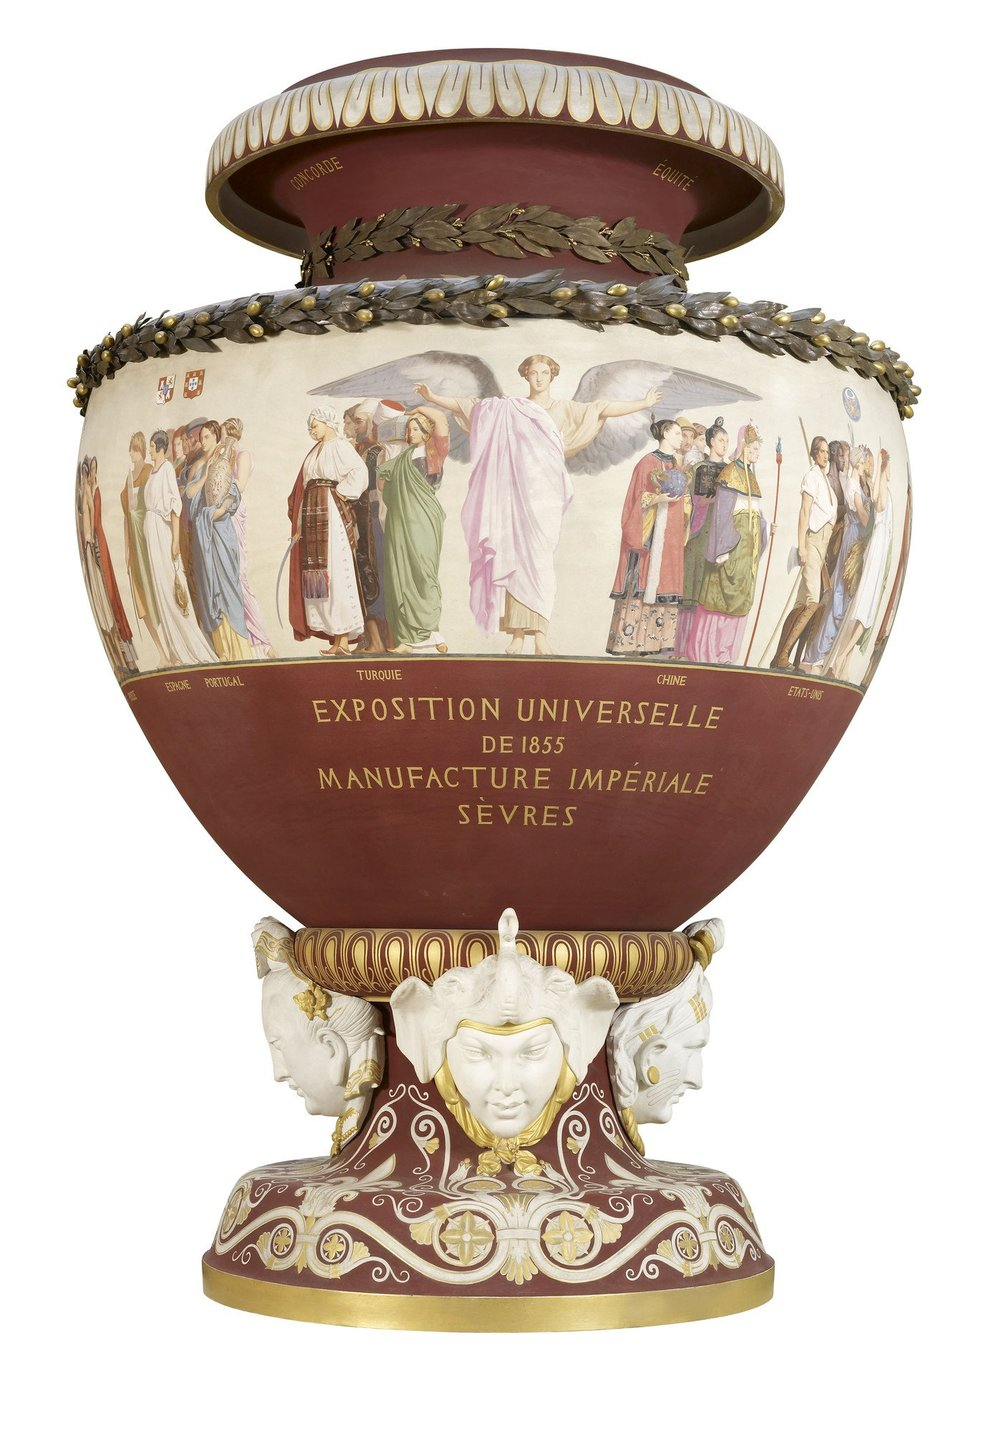 Sèvres Commemorative Vase, designed by Jean-Lèon Gérôme